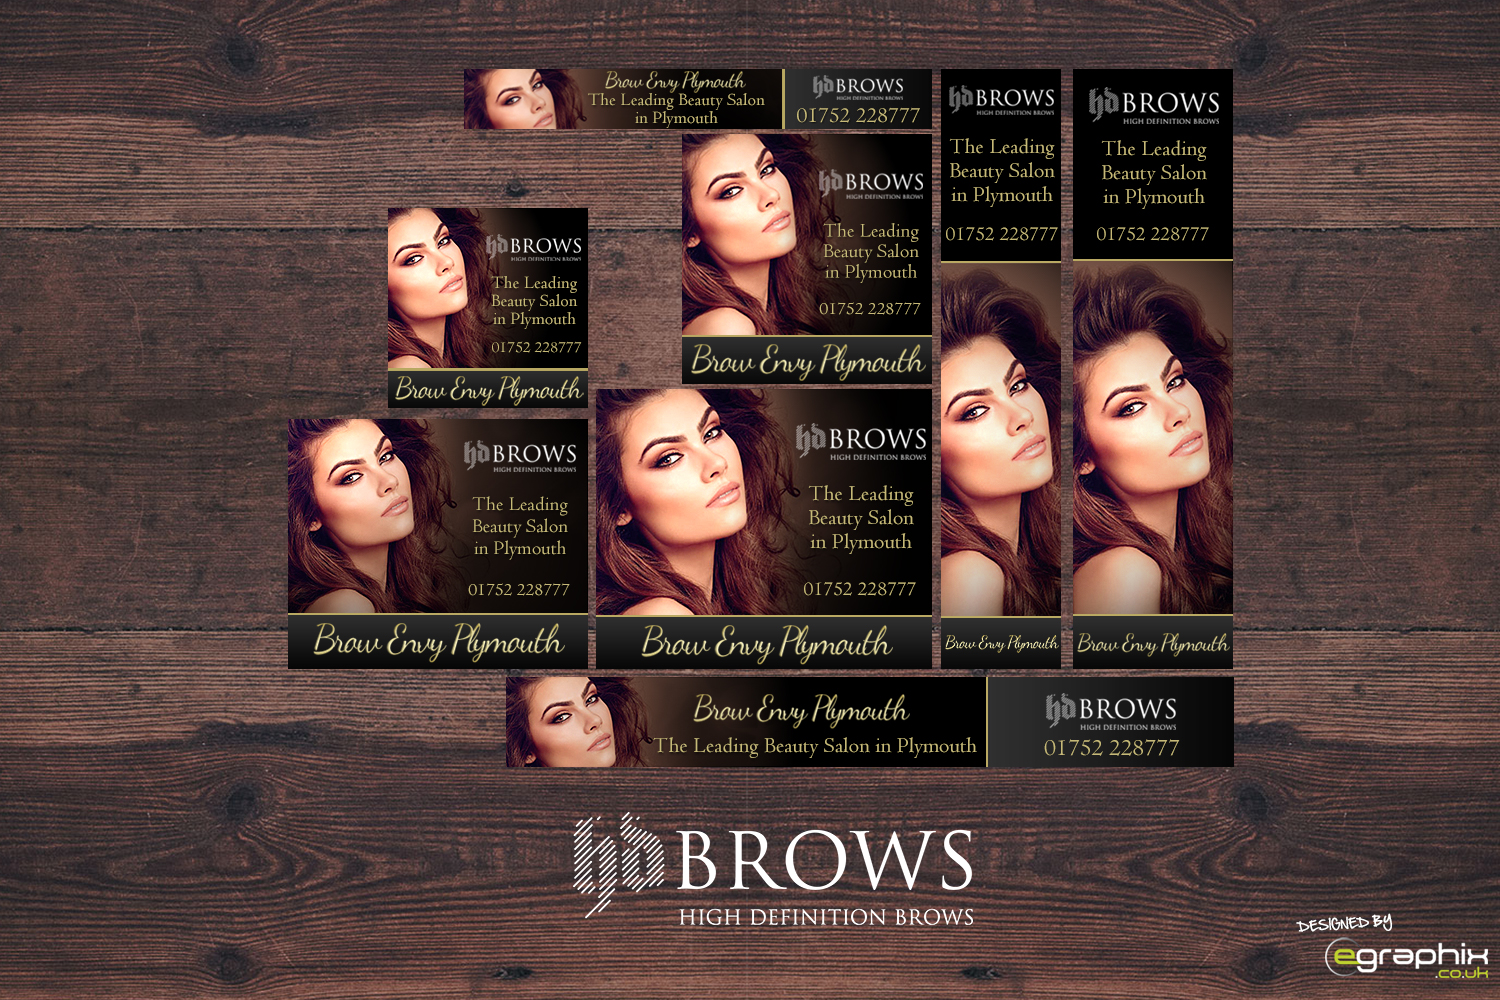 HD Brows Plymouth Remarketing Ads